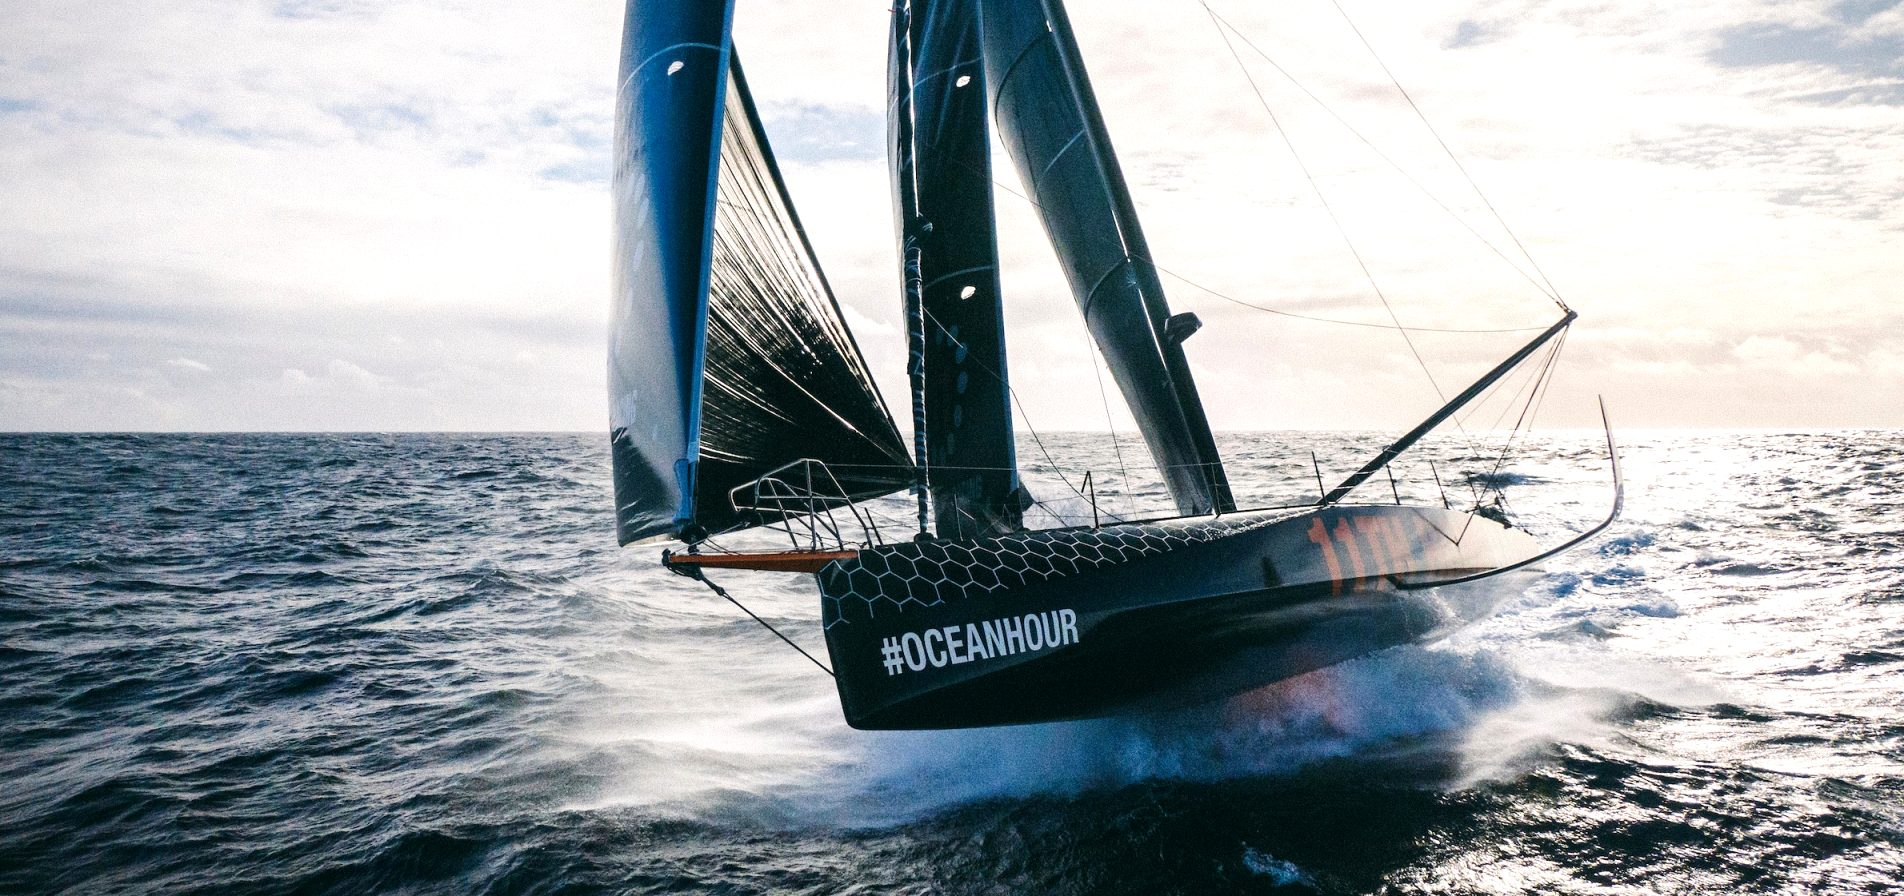 volvo ocean race newport 2021 Redesign and Review